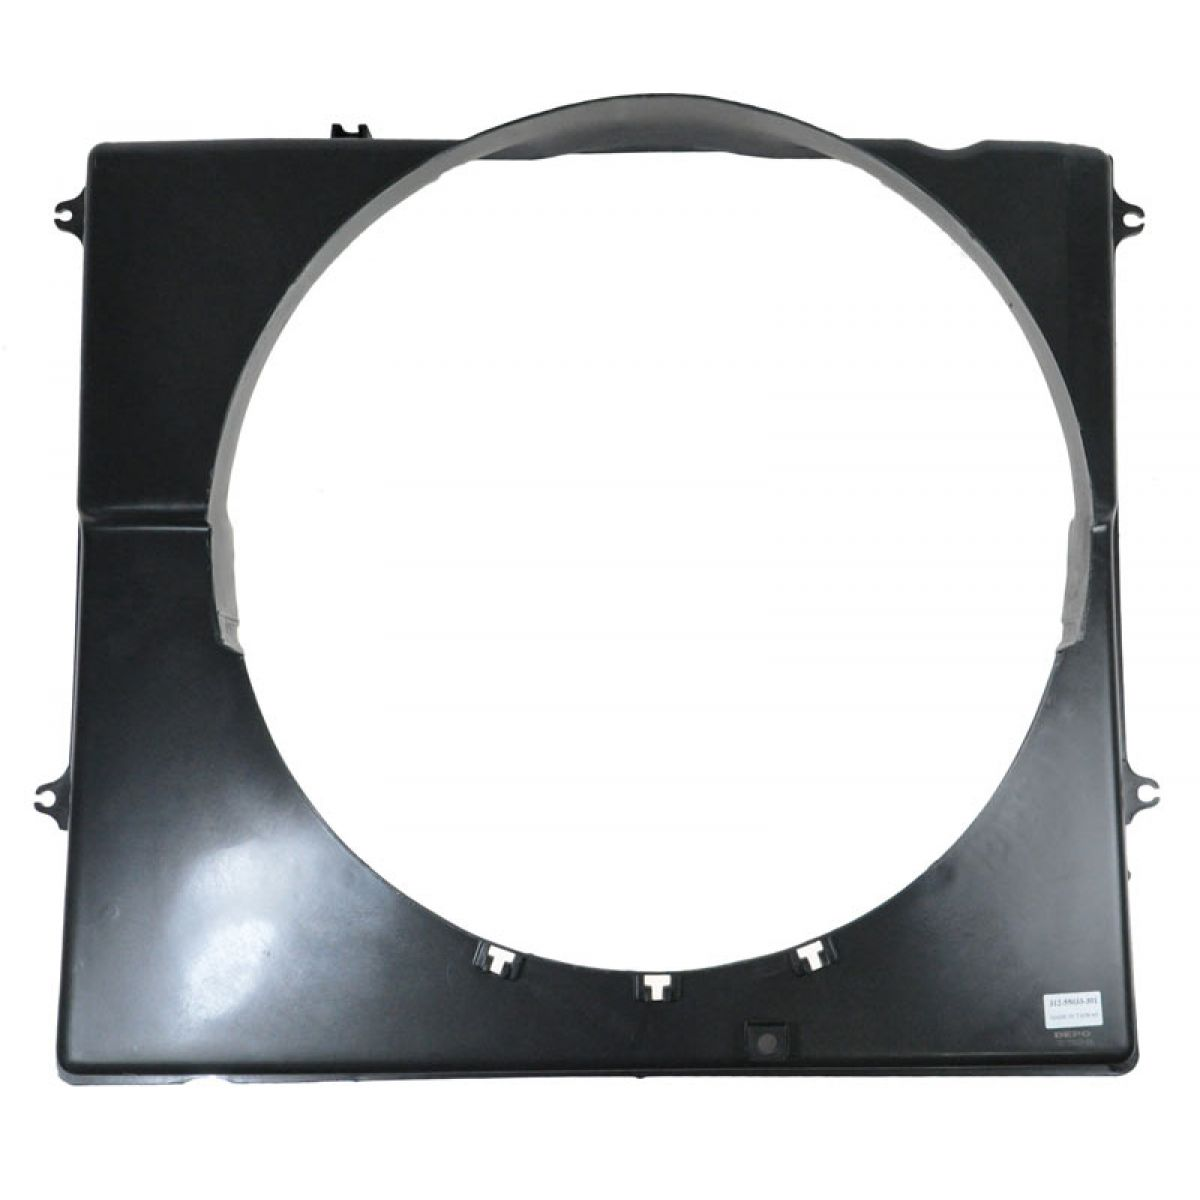 New Fan Shroud for Toyota Tacoma 1996-2000 TO3110111 1671107020